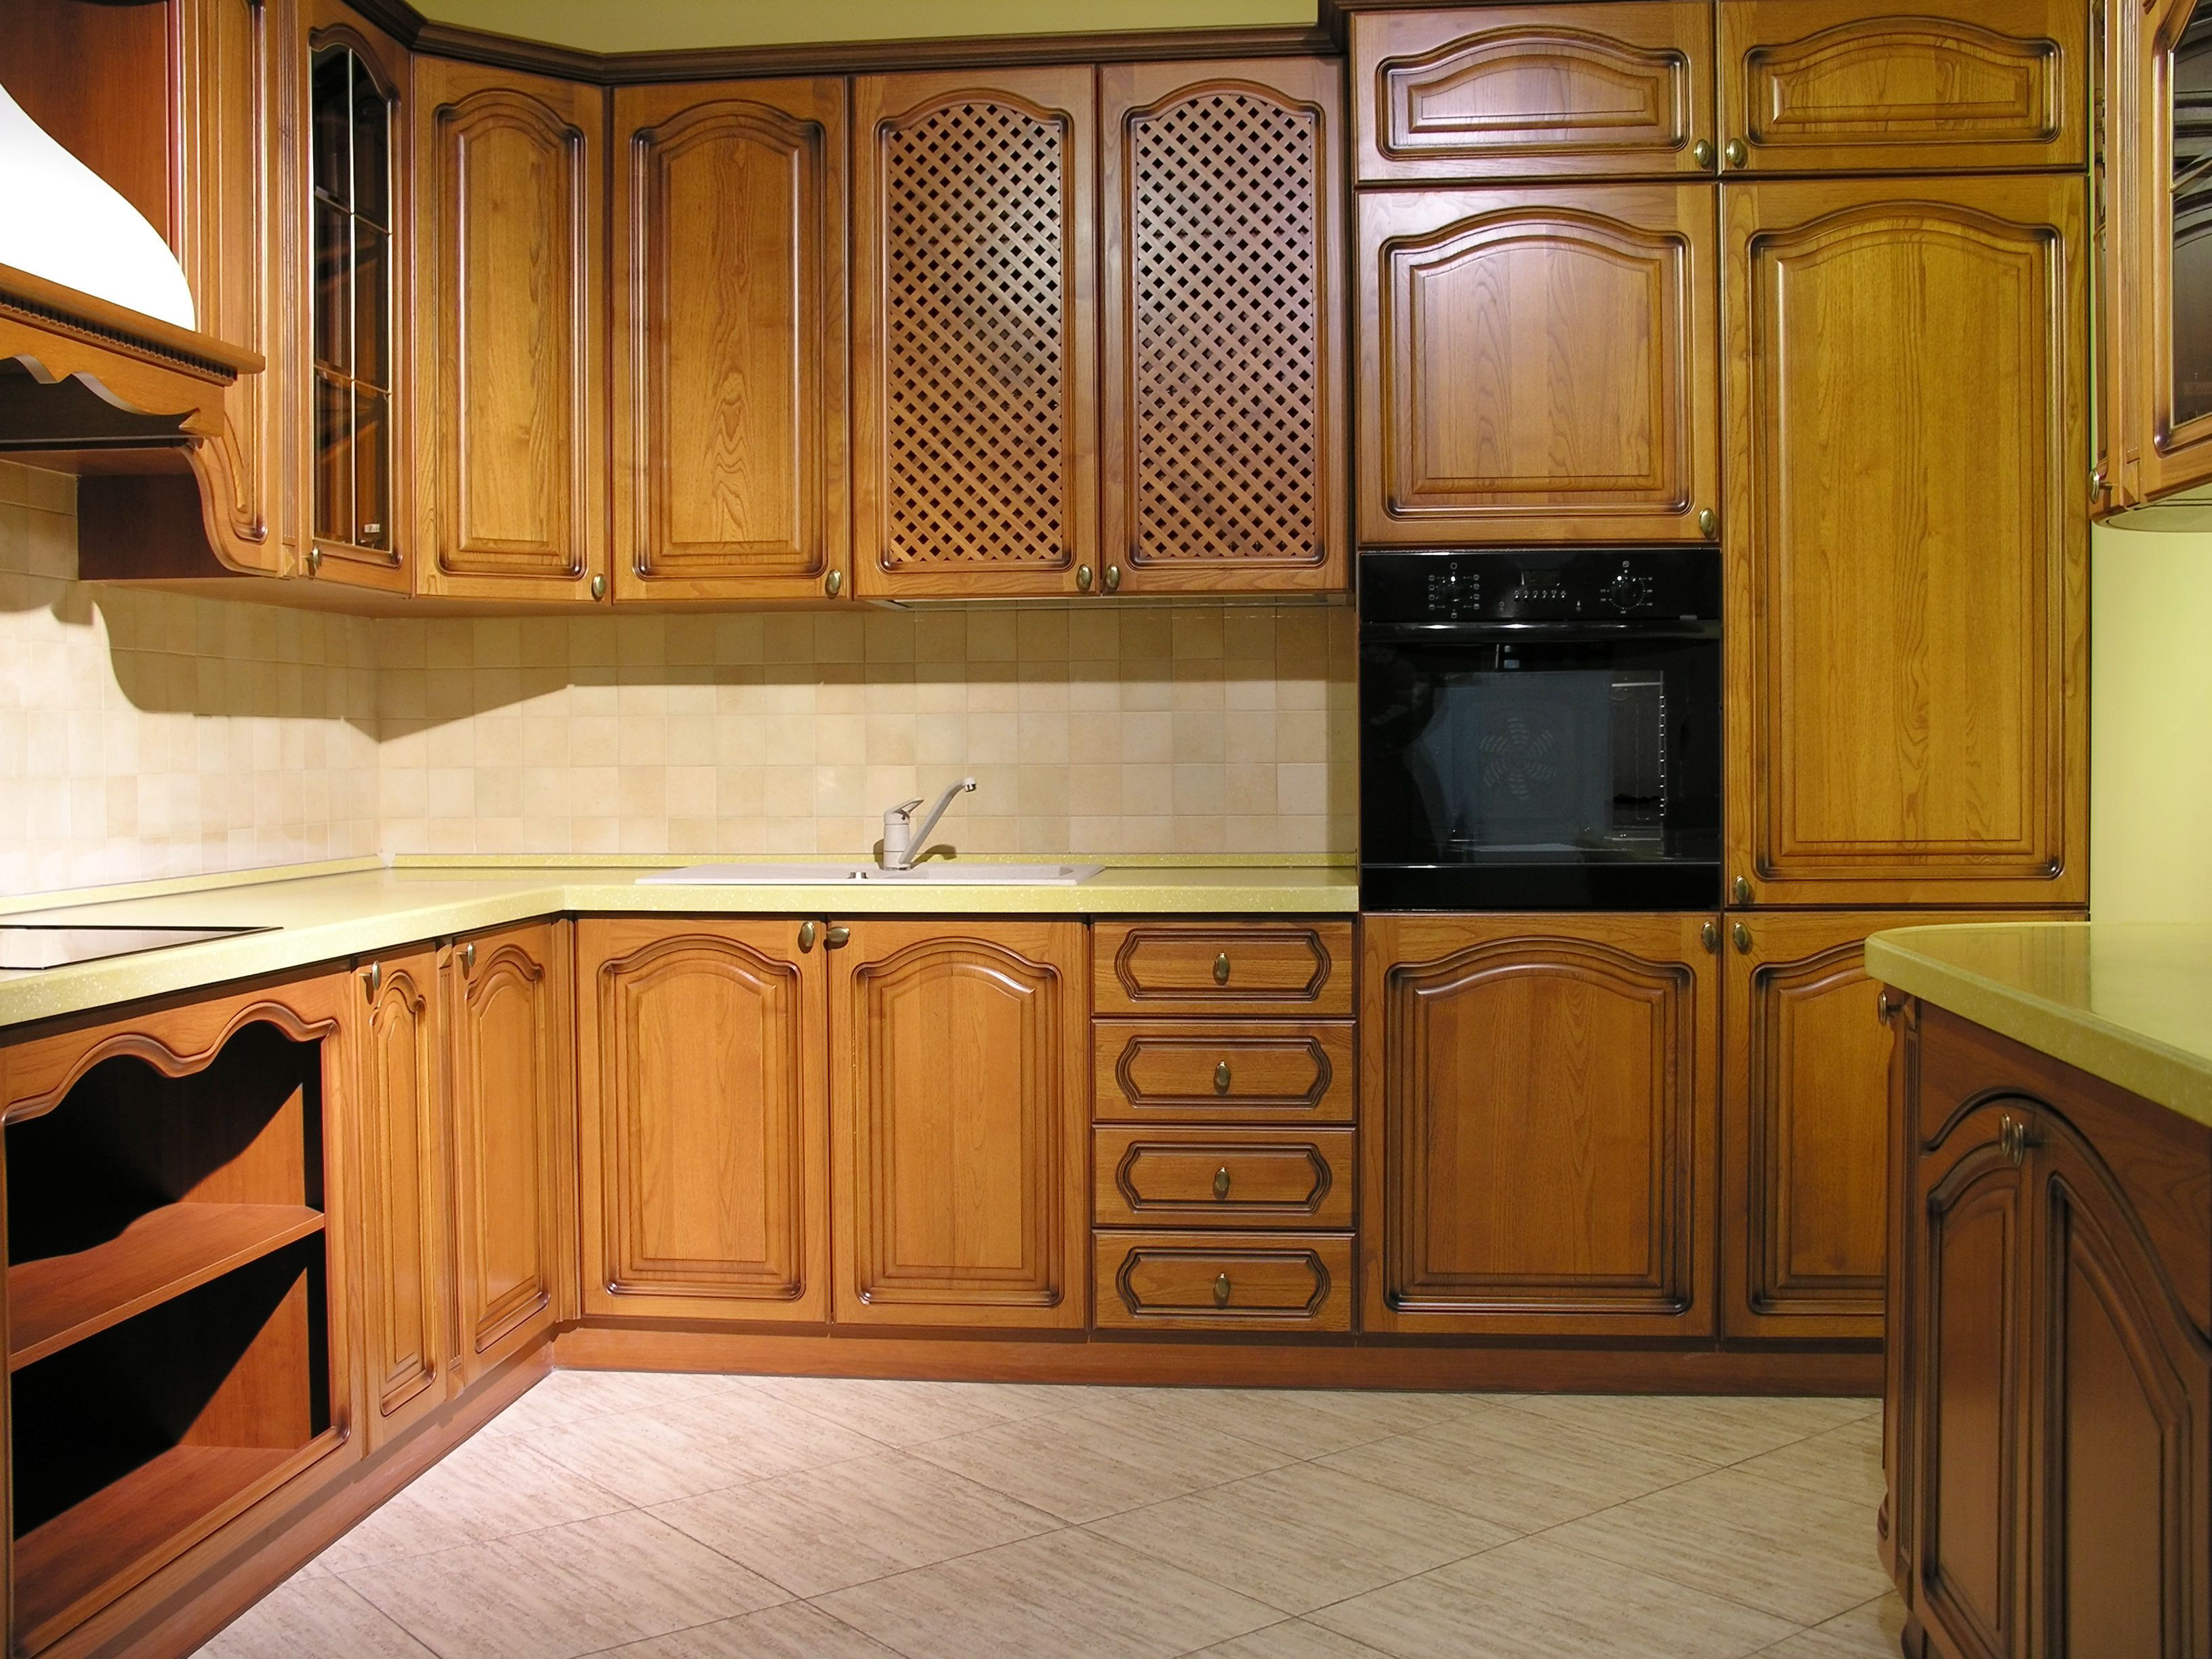 Retro kitchen cabinets custom cabinets wholesale